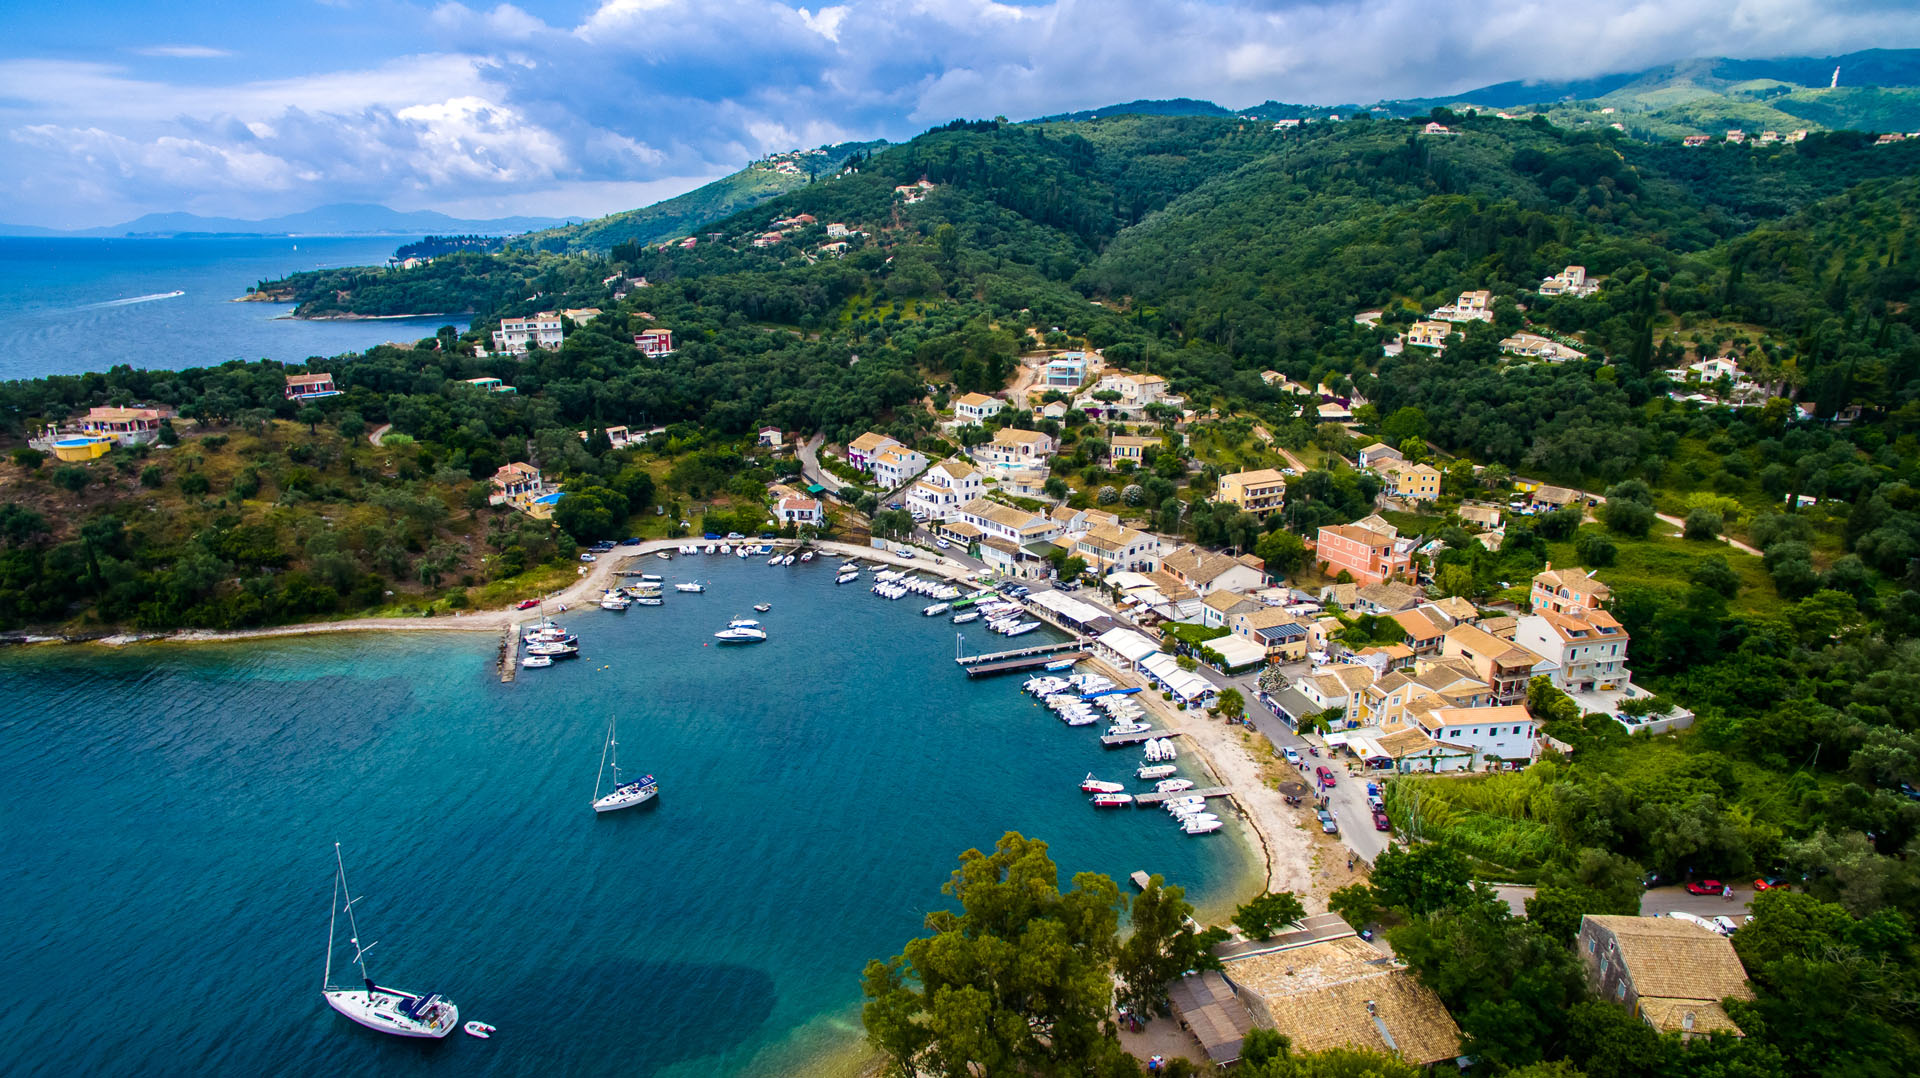 Corfu-Boats-in-St-Stefanos